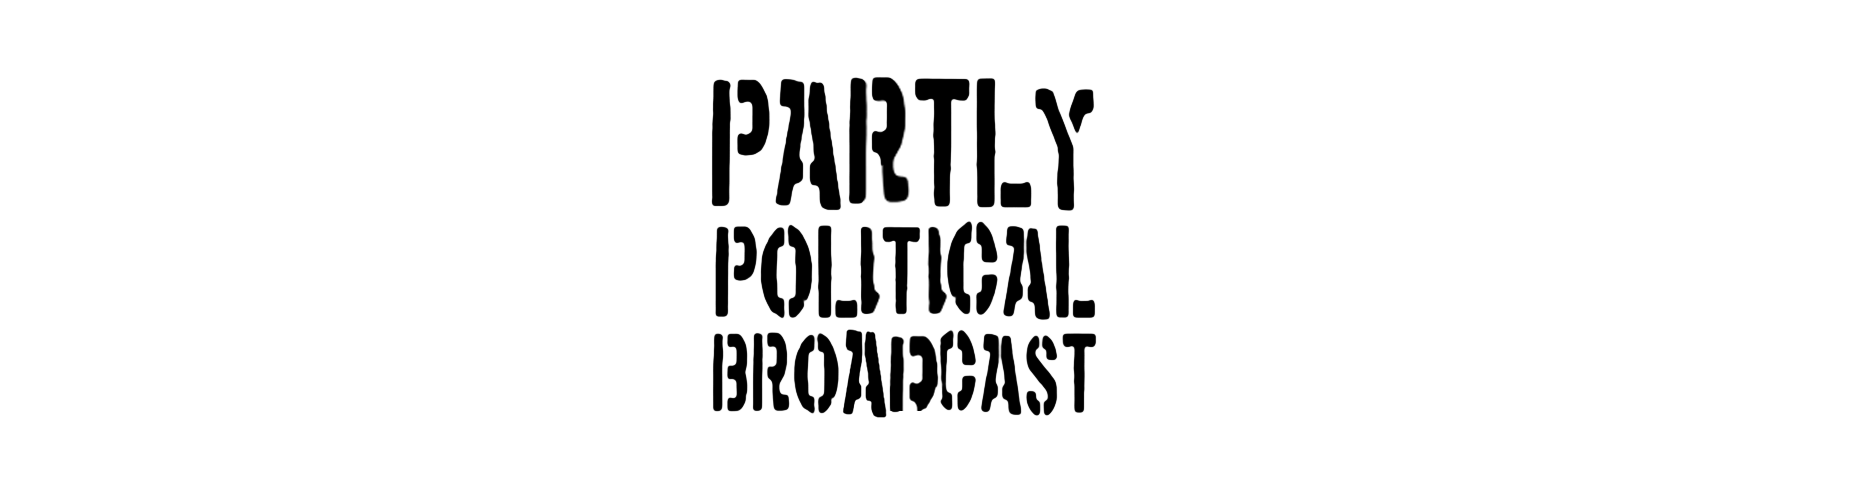 Partly Political Broadcast